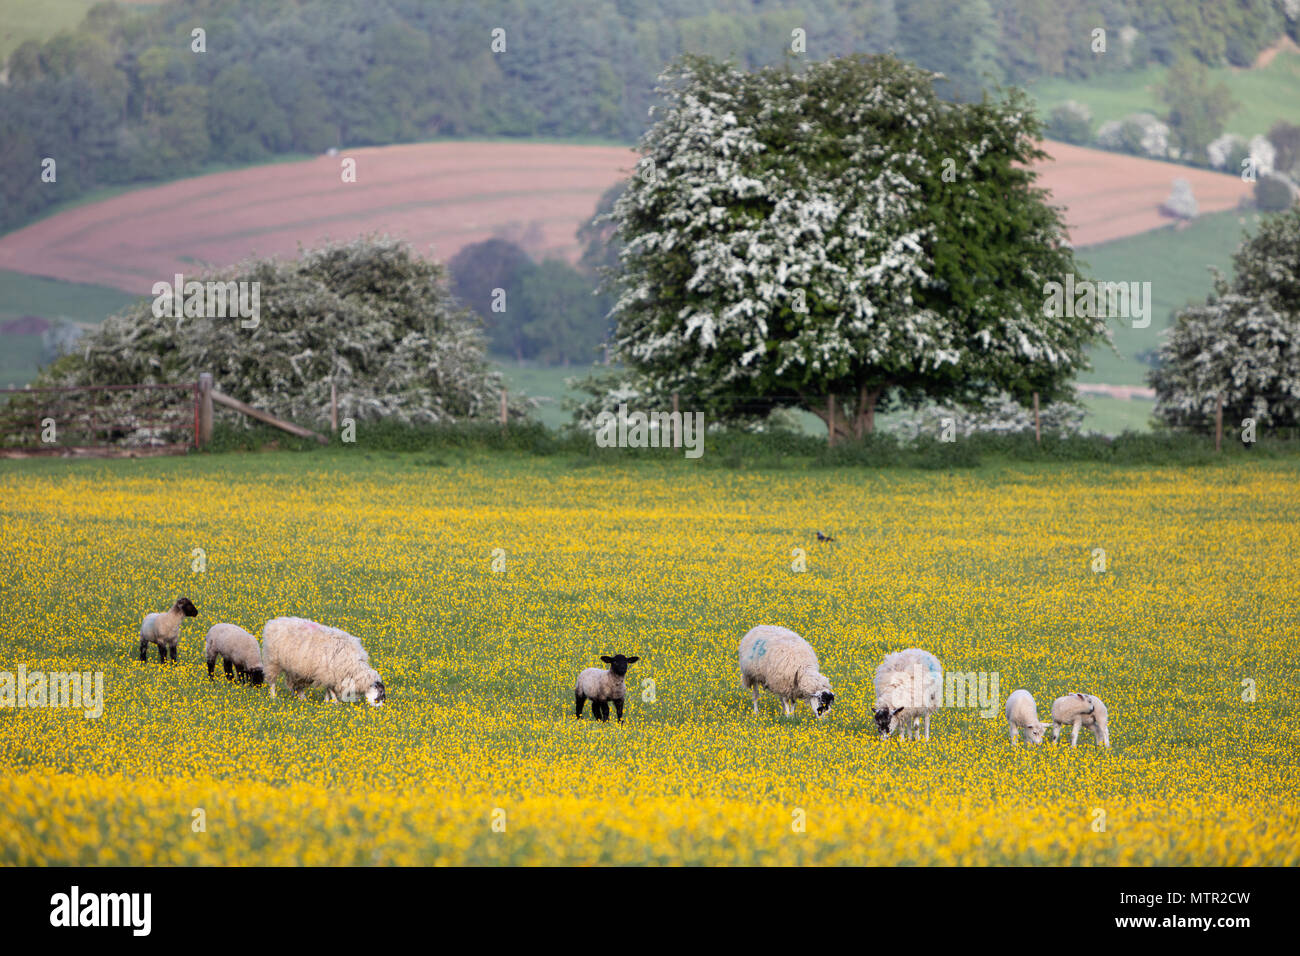 Sheep and lambs grazing in Buttercup field, Broadway, Cotswolds AONB, Worcestershire, England, United Kingdom, Europe - Stock Image